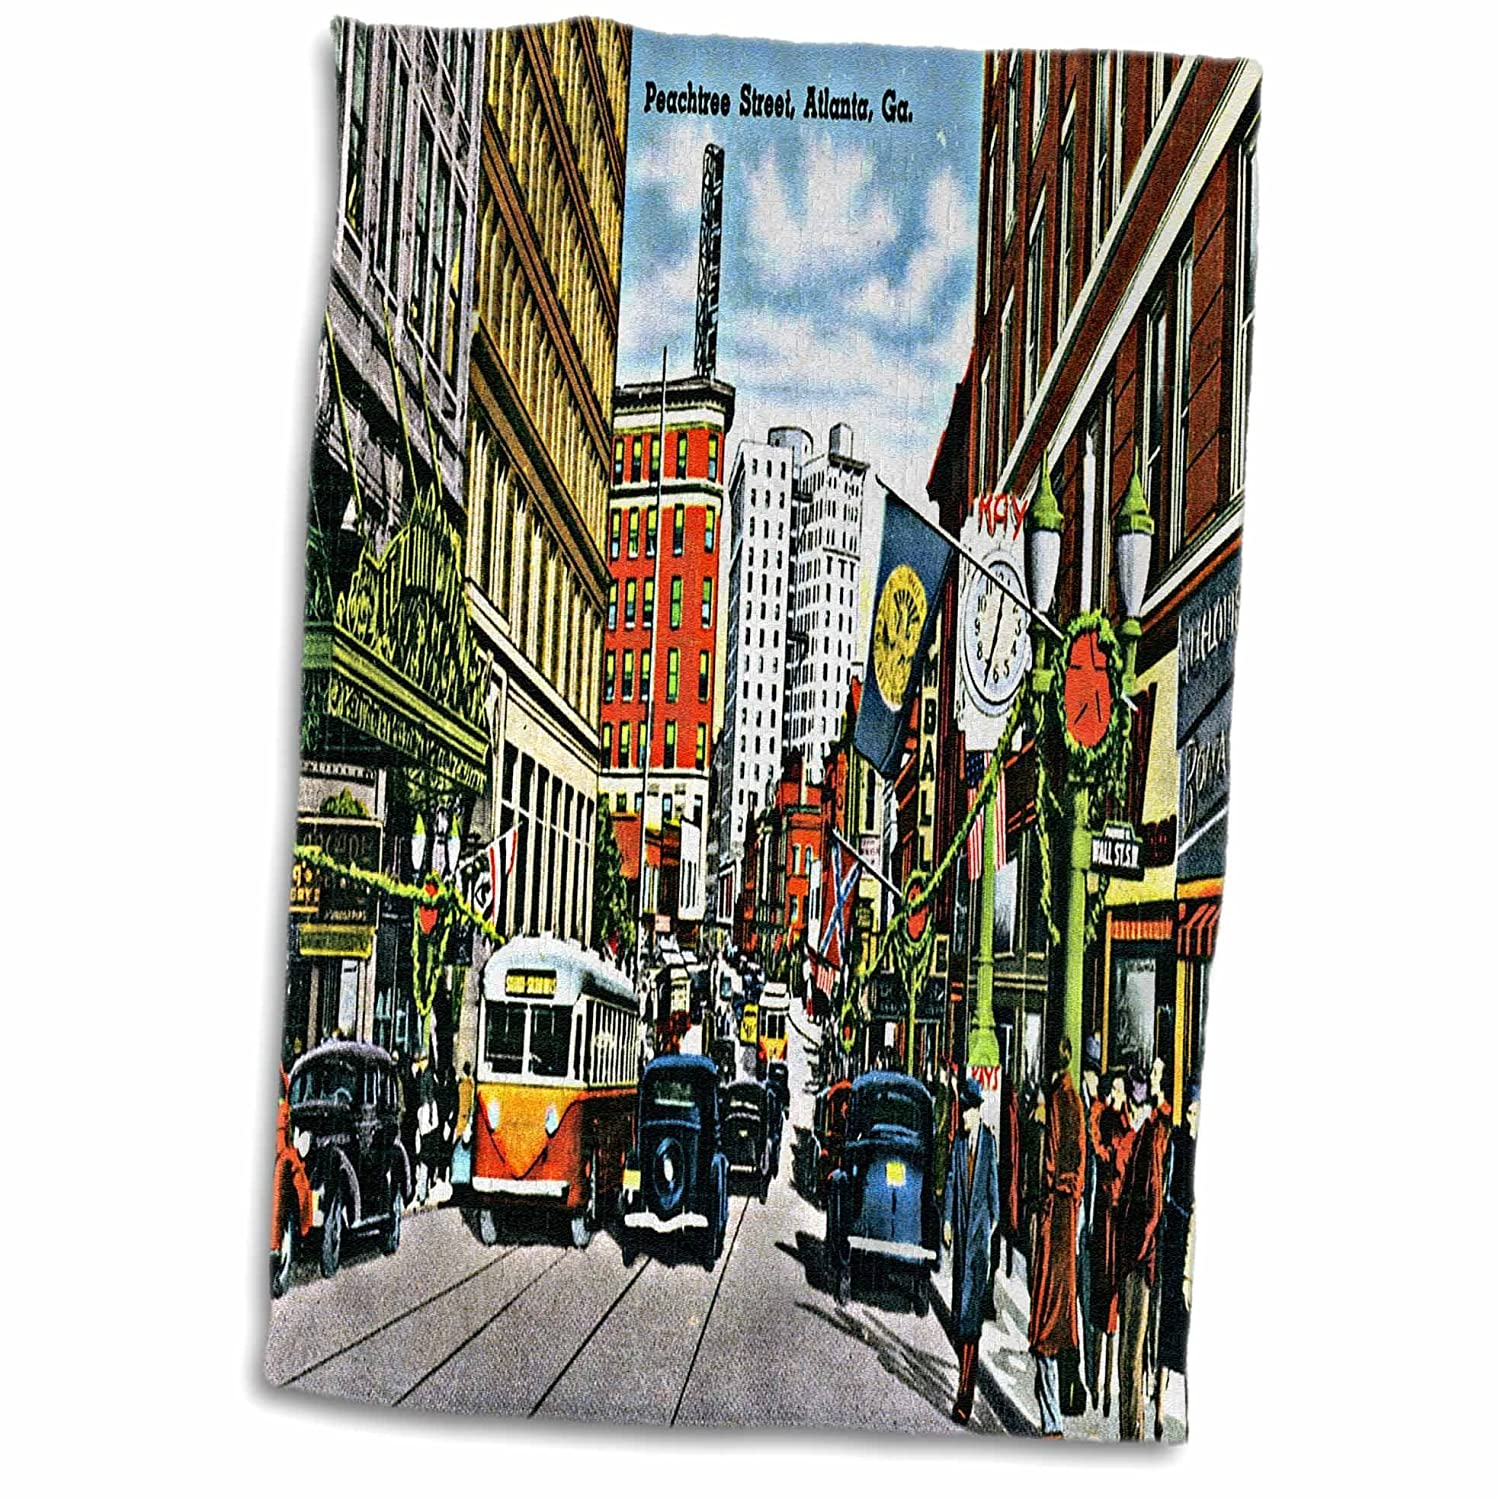 3D Rose Peachtree Street Atlanta Georgia with Antique Cards and People Towel 15 x 22